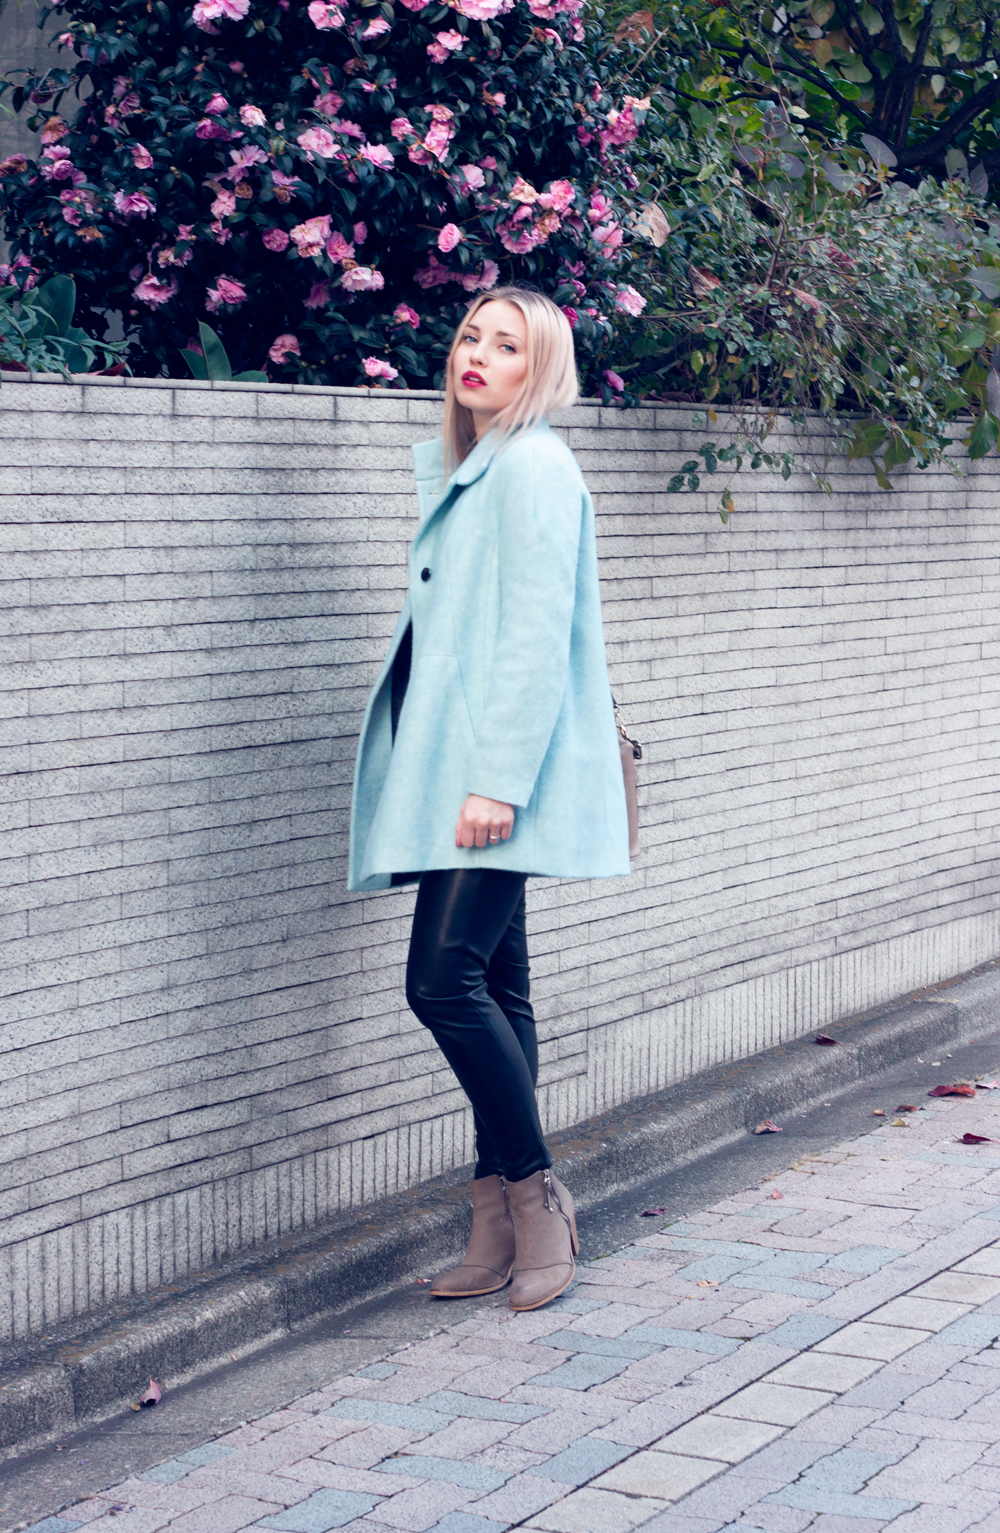 turquoise coat, leather pants, beige boots and bag, tokyo outfit